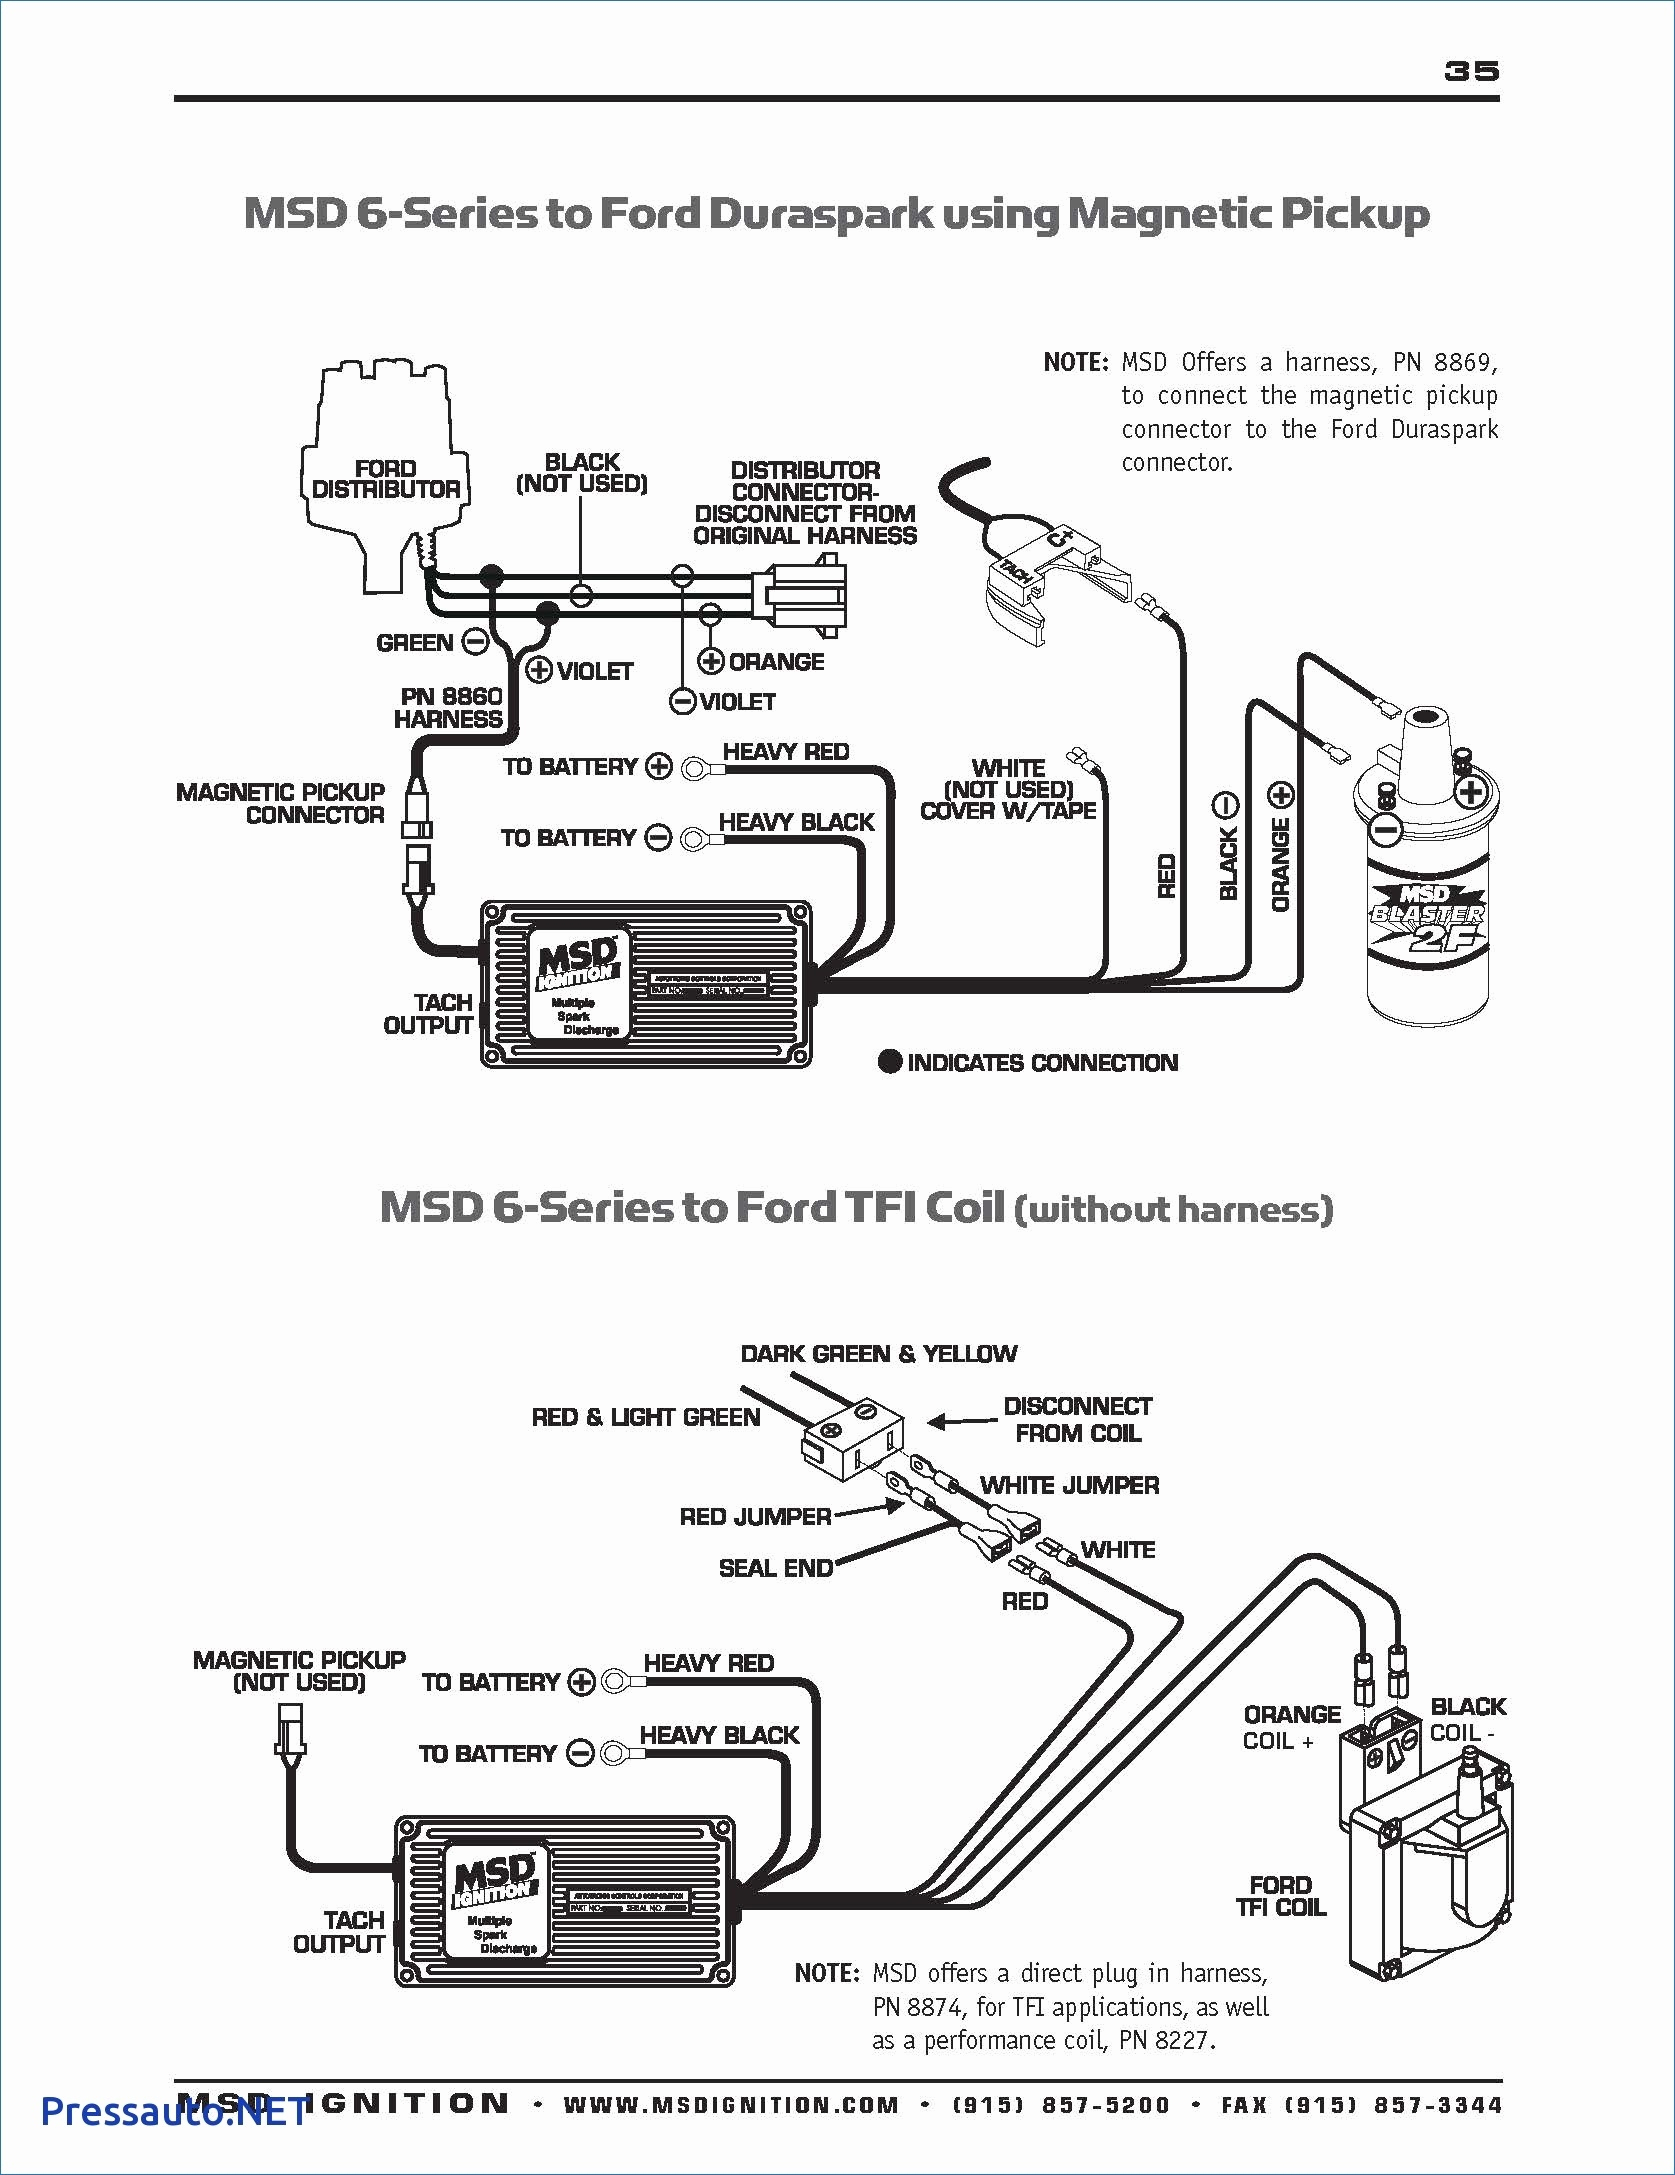 coil and msd 6al wiring diagram all diagram schematics Msd Ford Wiring Diagrams msd 6al2 install question!! mustang